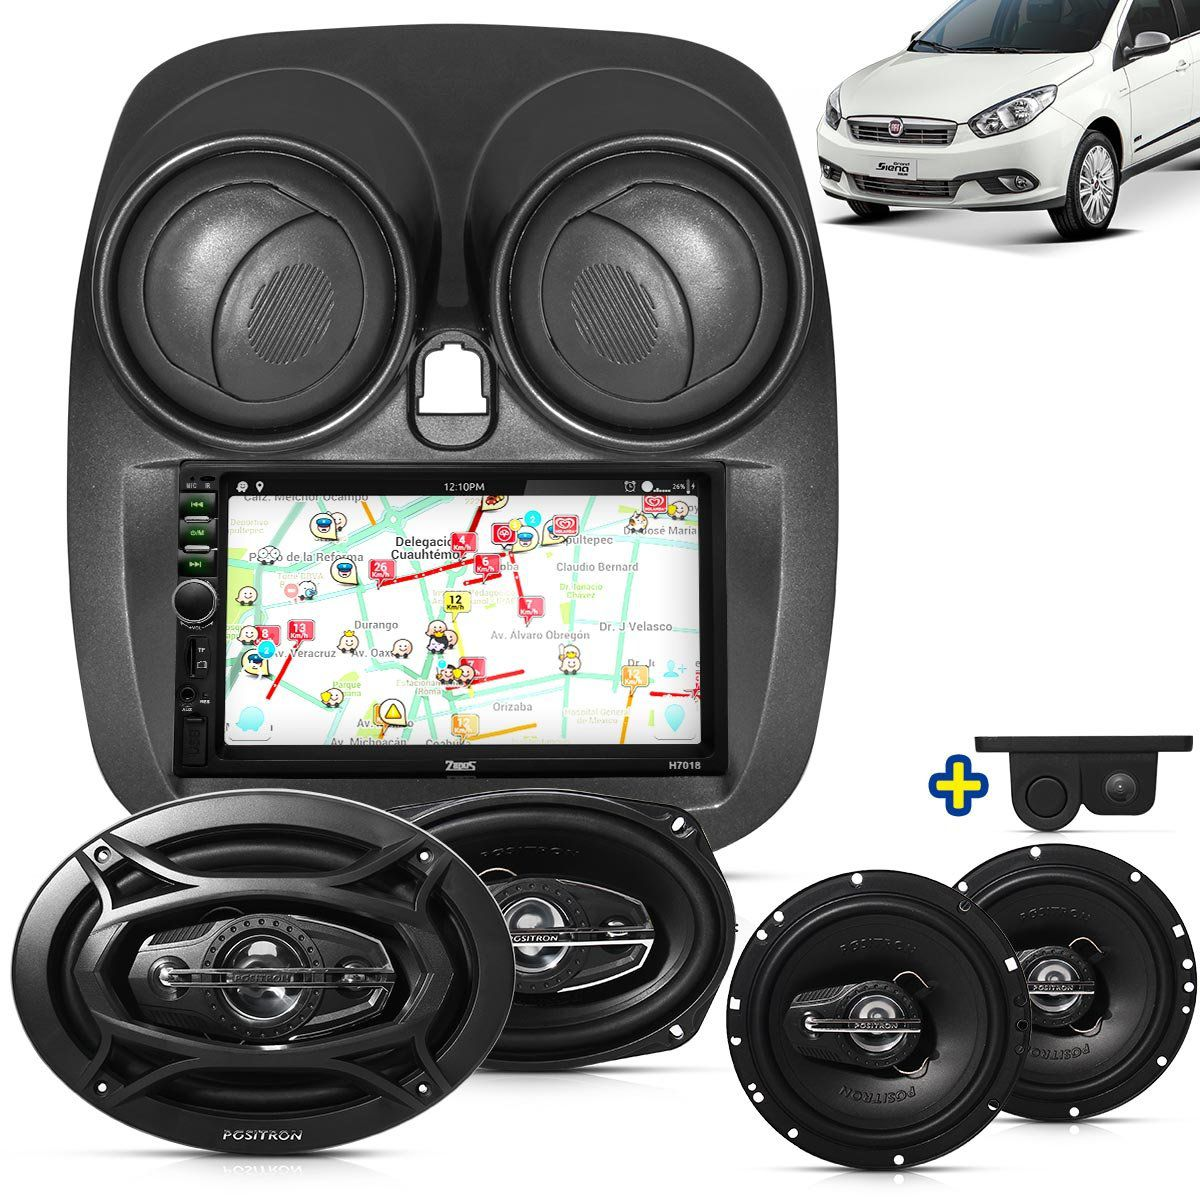 Kit Multimidia Mp5 Grand Siena 2015 2016 + Moldura Cinza Camera Ré Sensor Par Falantes 6